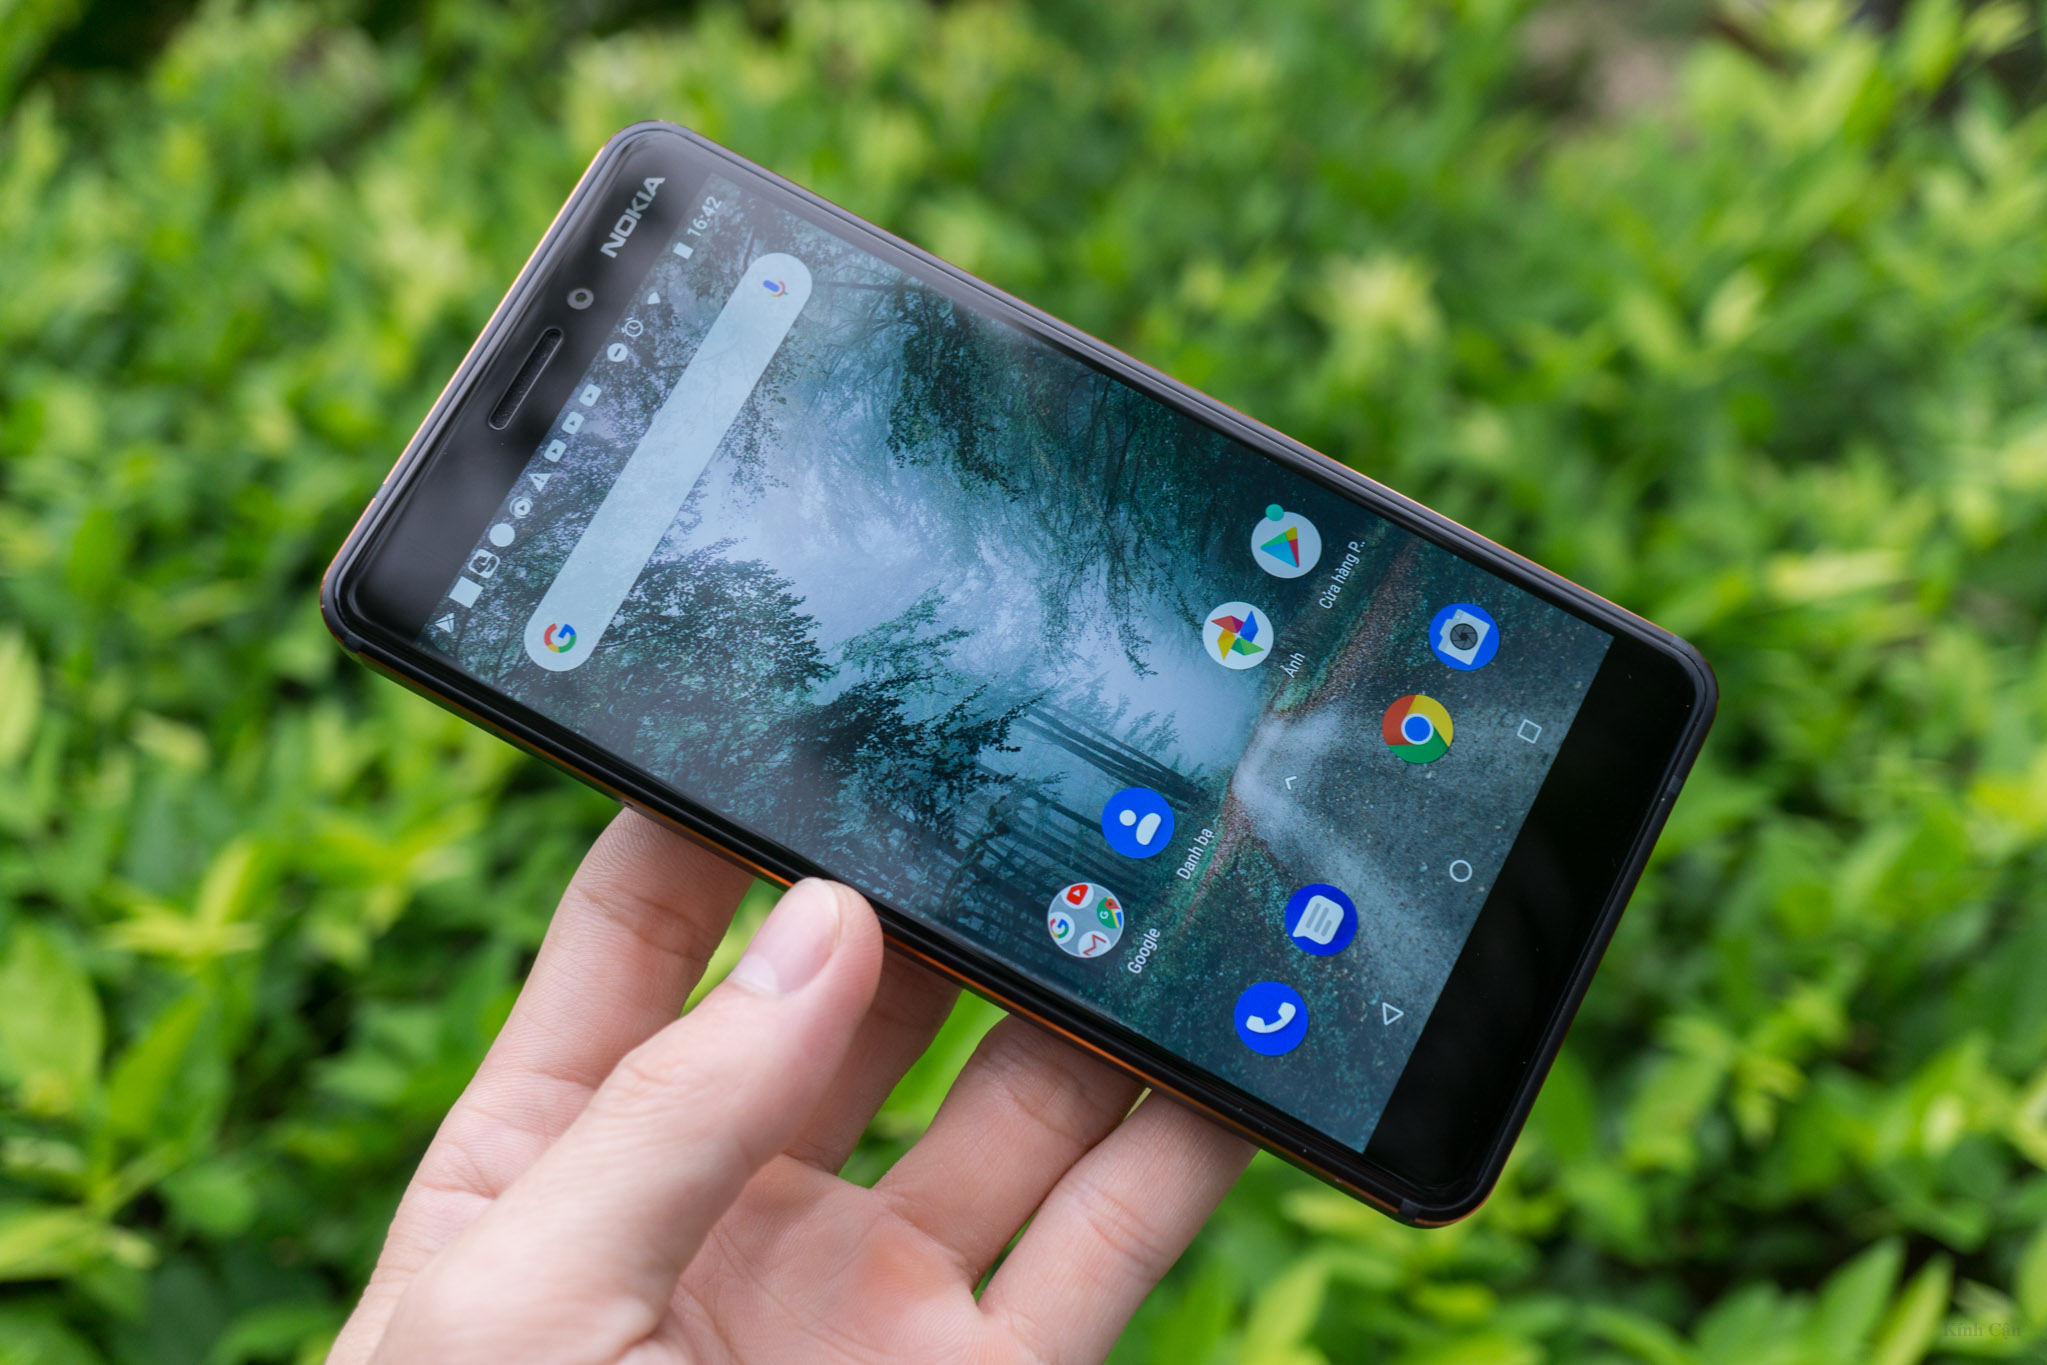 Android P Nokia 6 mới-10.jpg